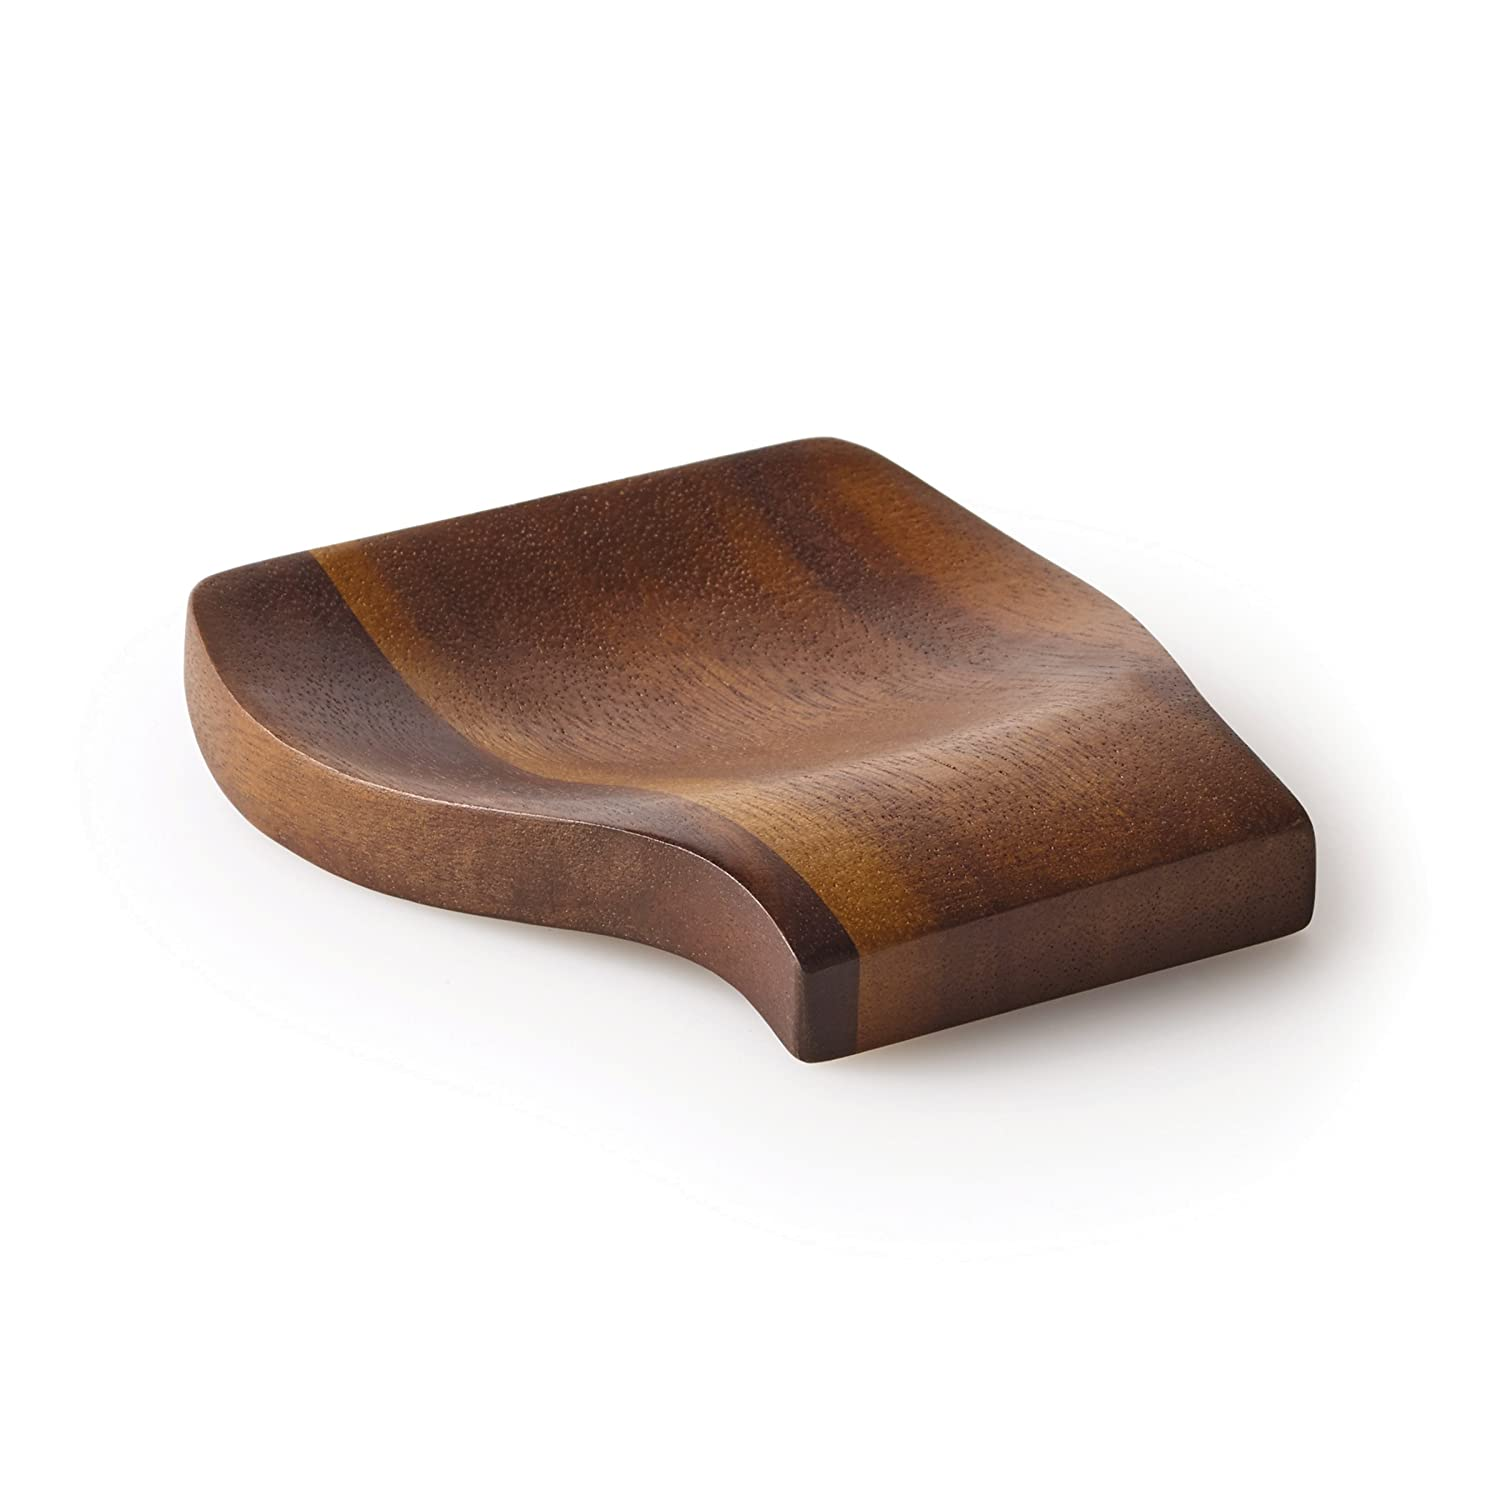 Kamenstein Acacia Spoon Rest, Natural 5186011